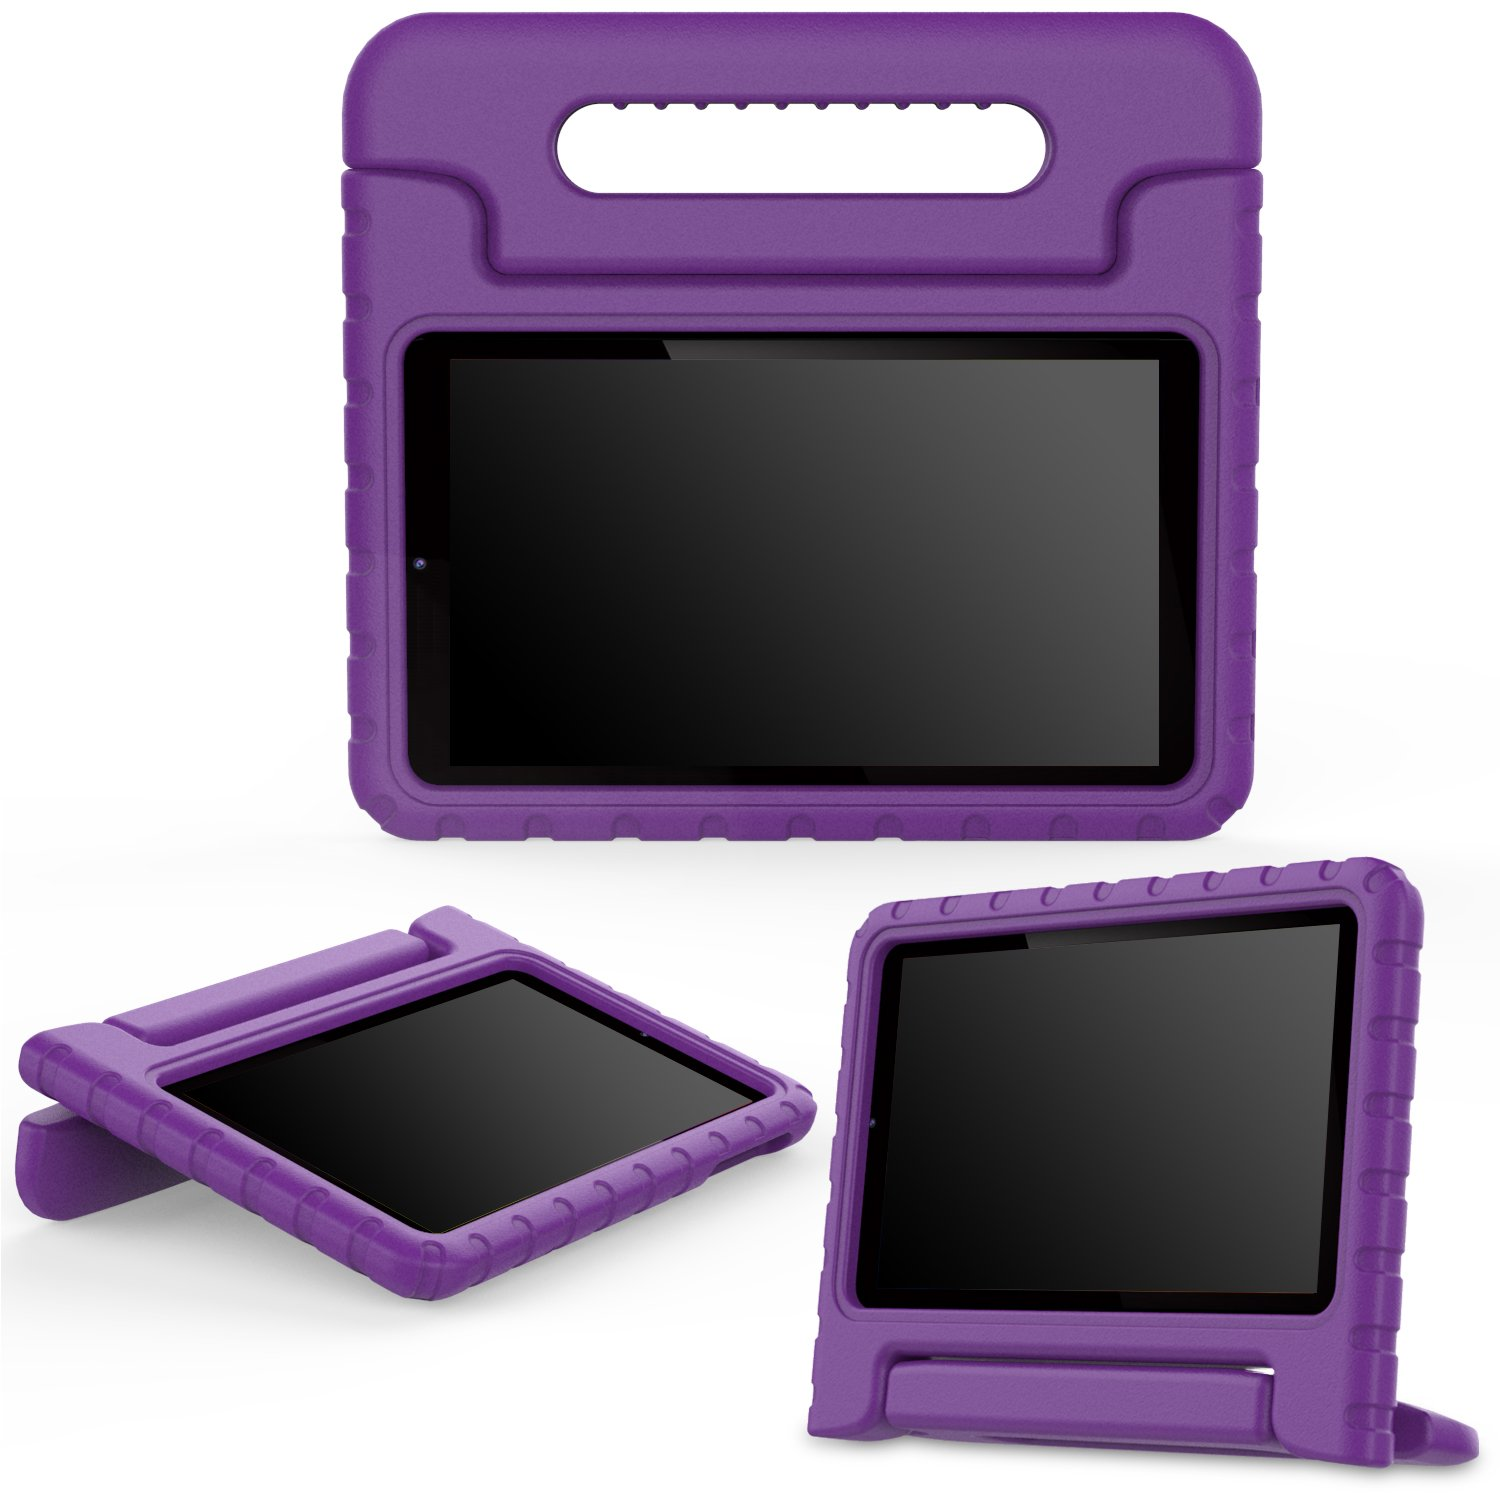 MoKo Dragon Touch S8 Case - Kids Shock Proof Convertible Handle Light Weight Protective Stand Cover for Dragon Touch S8 8'' Intel Quad Core 64 bits Android Tablet, PURPLE